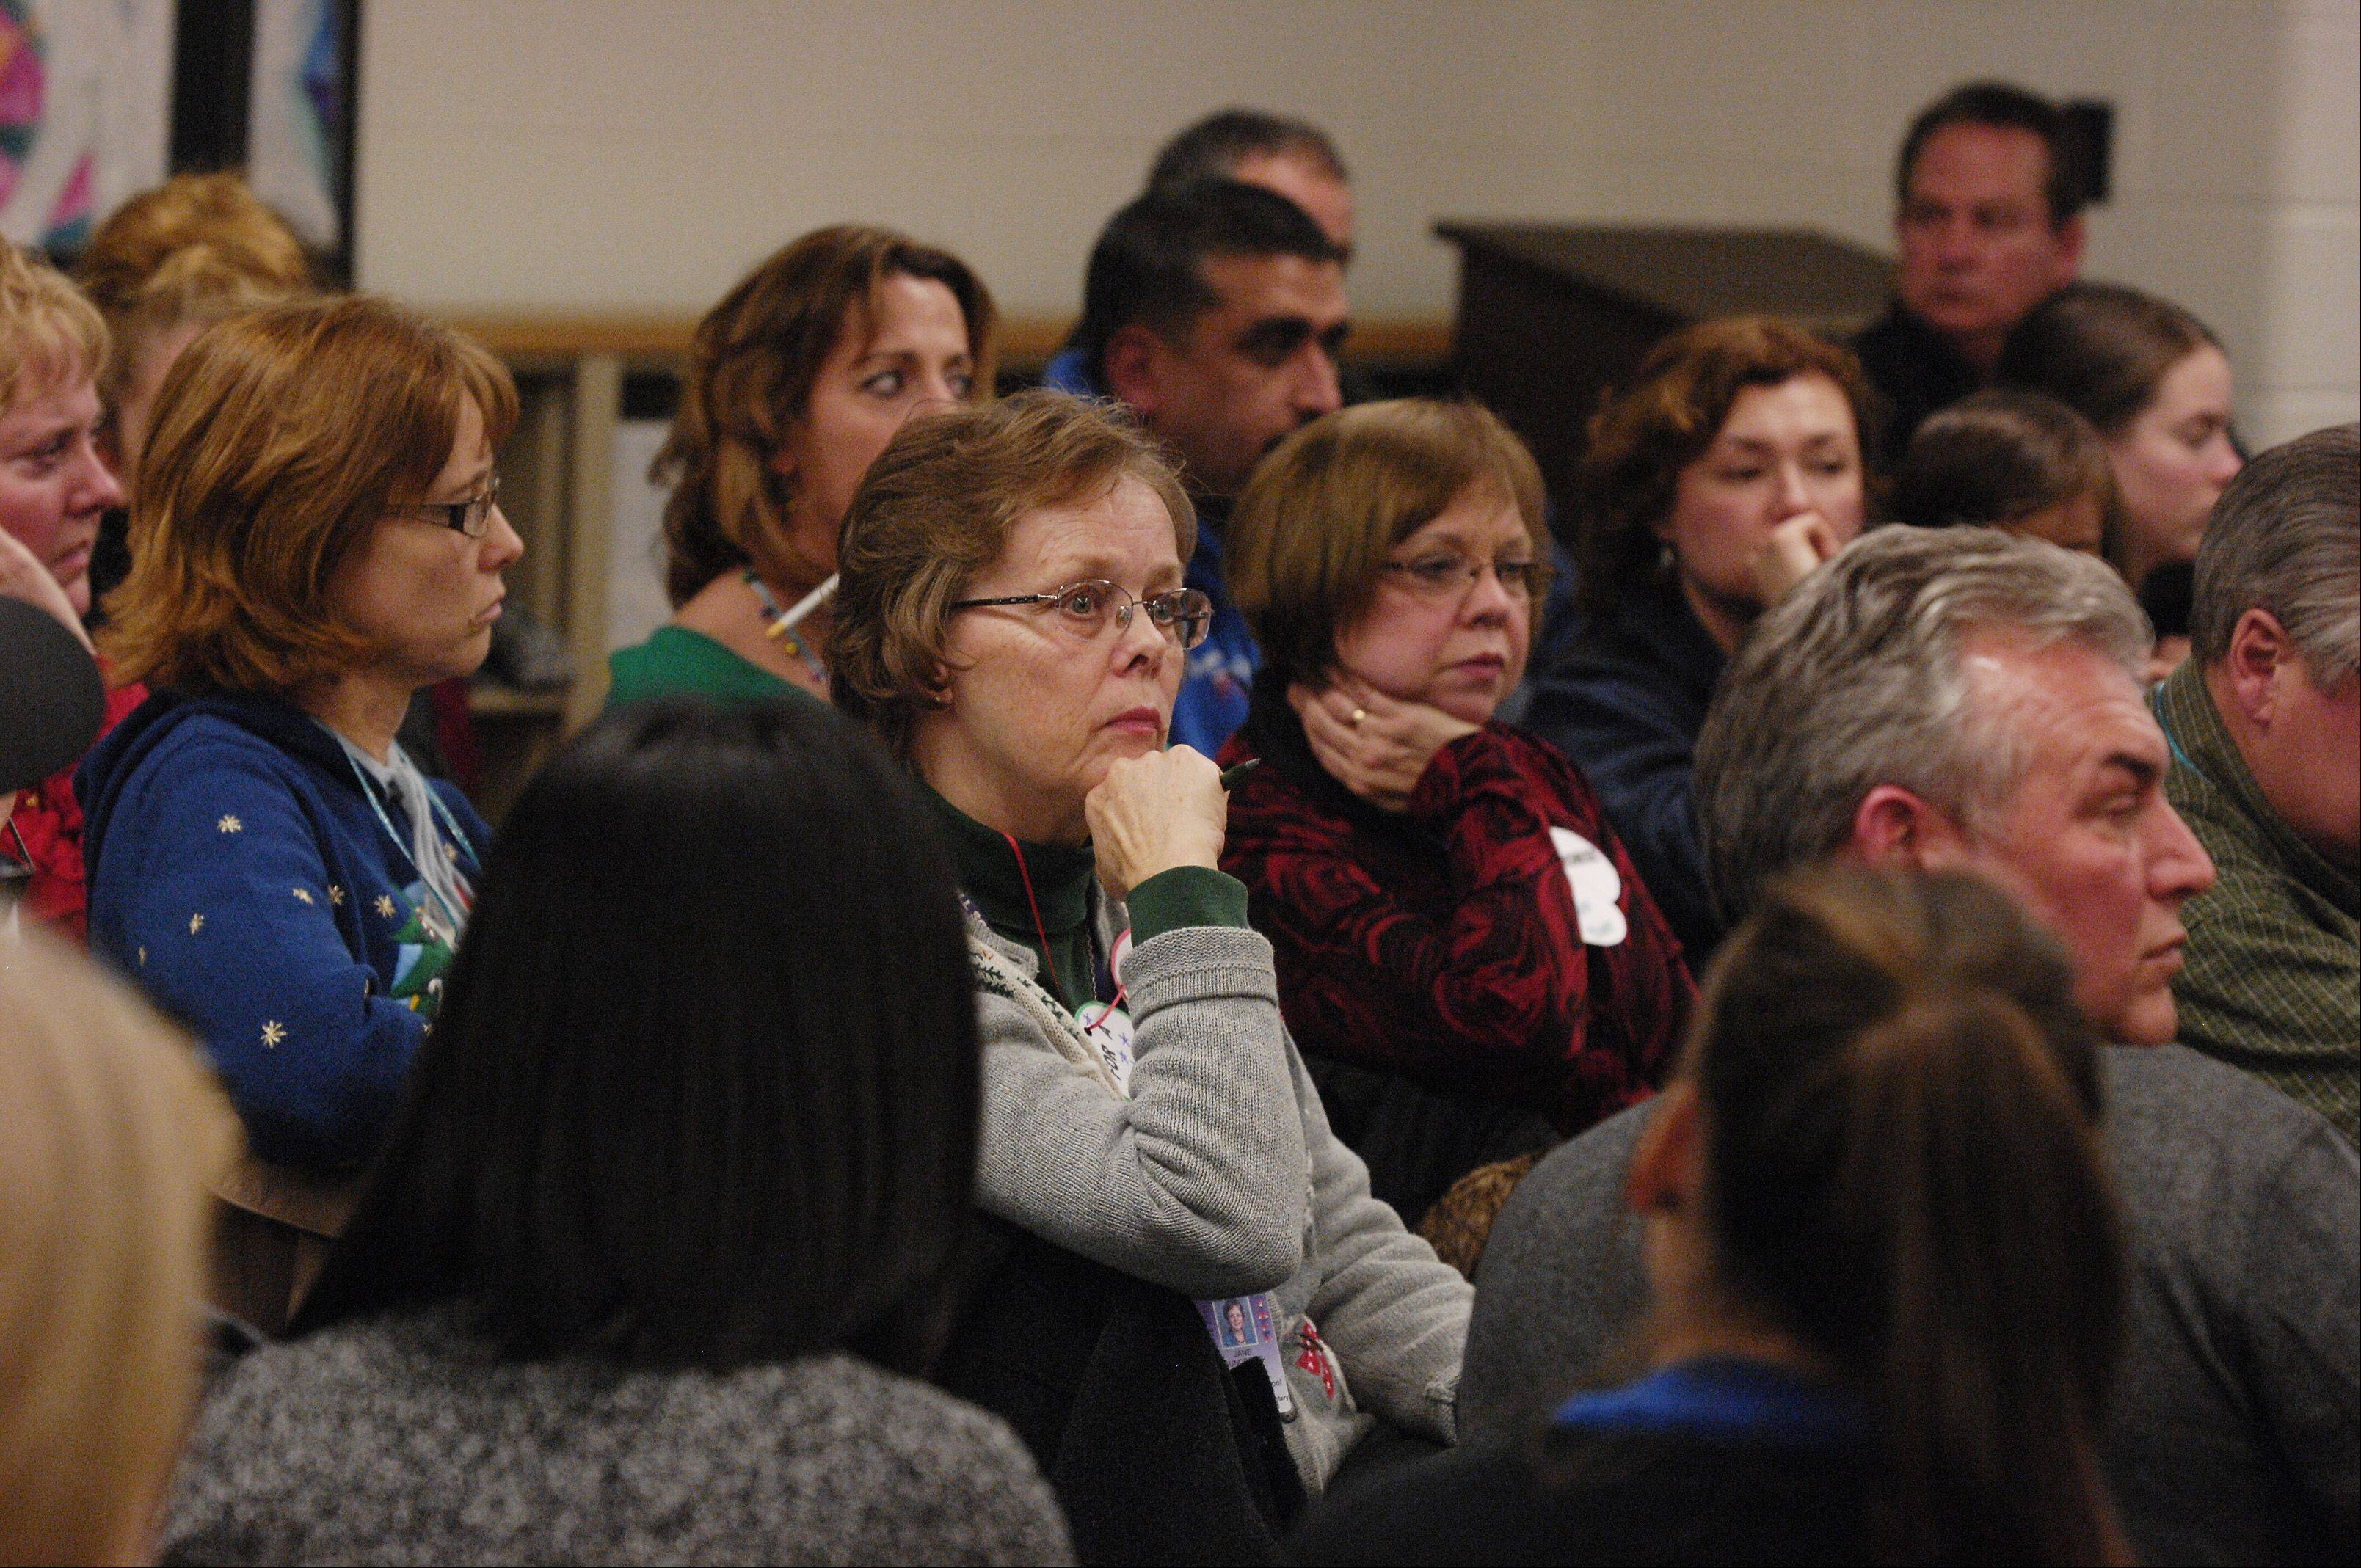 Residents, teachers and parents listen to West Chicago Elementary District 33 school board members and administrators answer questions during a town-hall meeting at West Chicago Middle School.